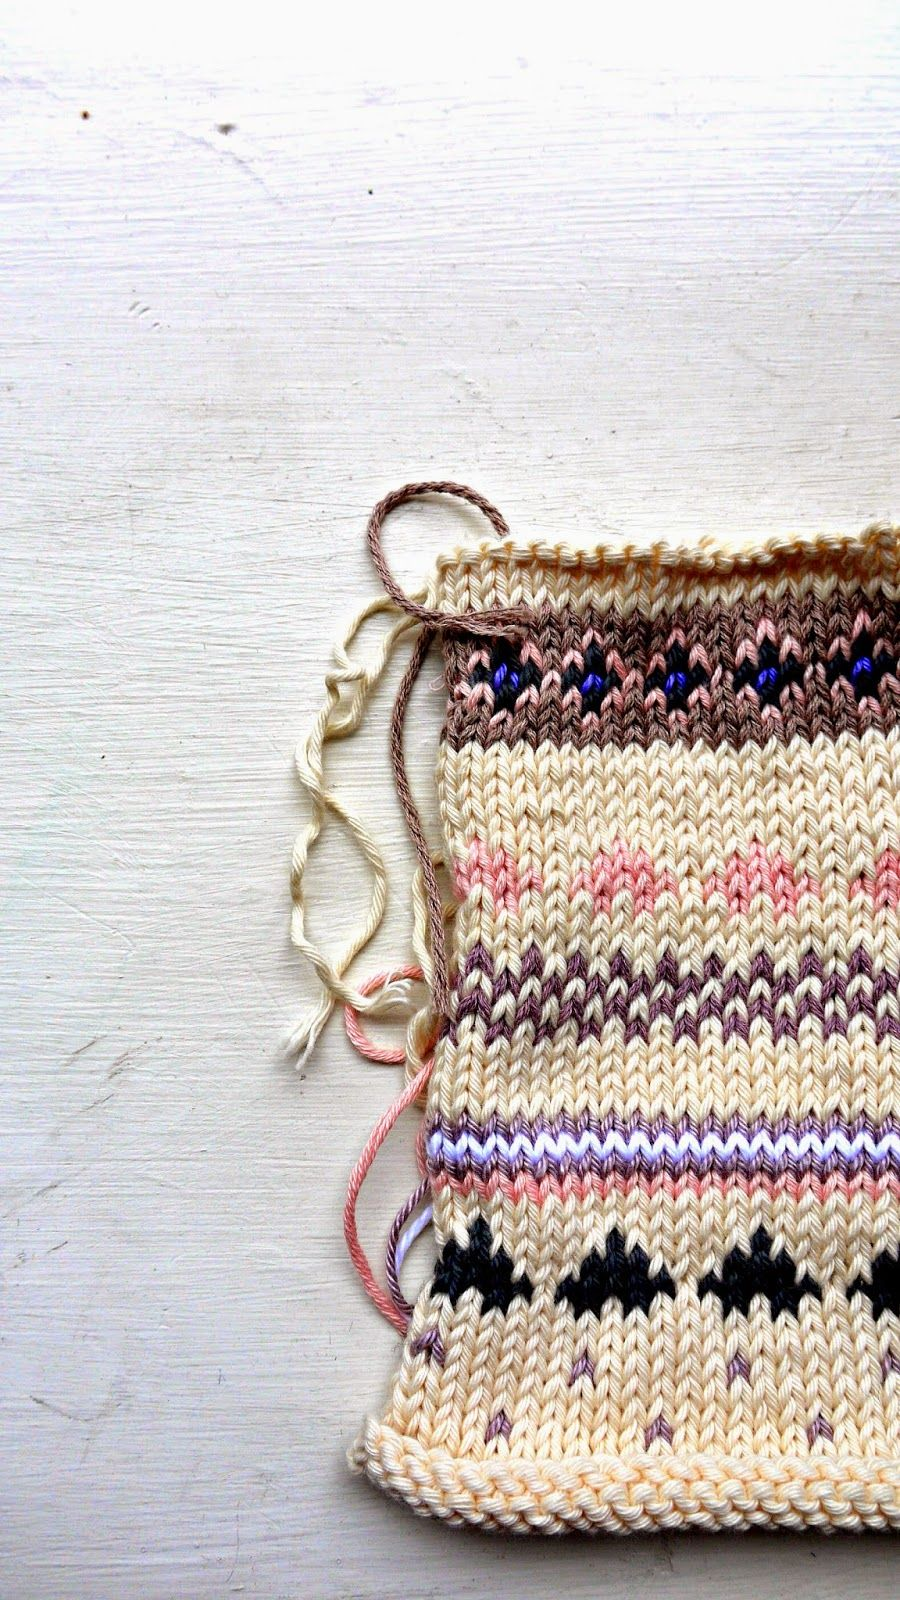 Porcupine Design: fair isle nordic knits (from Nikki Trench)